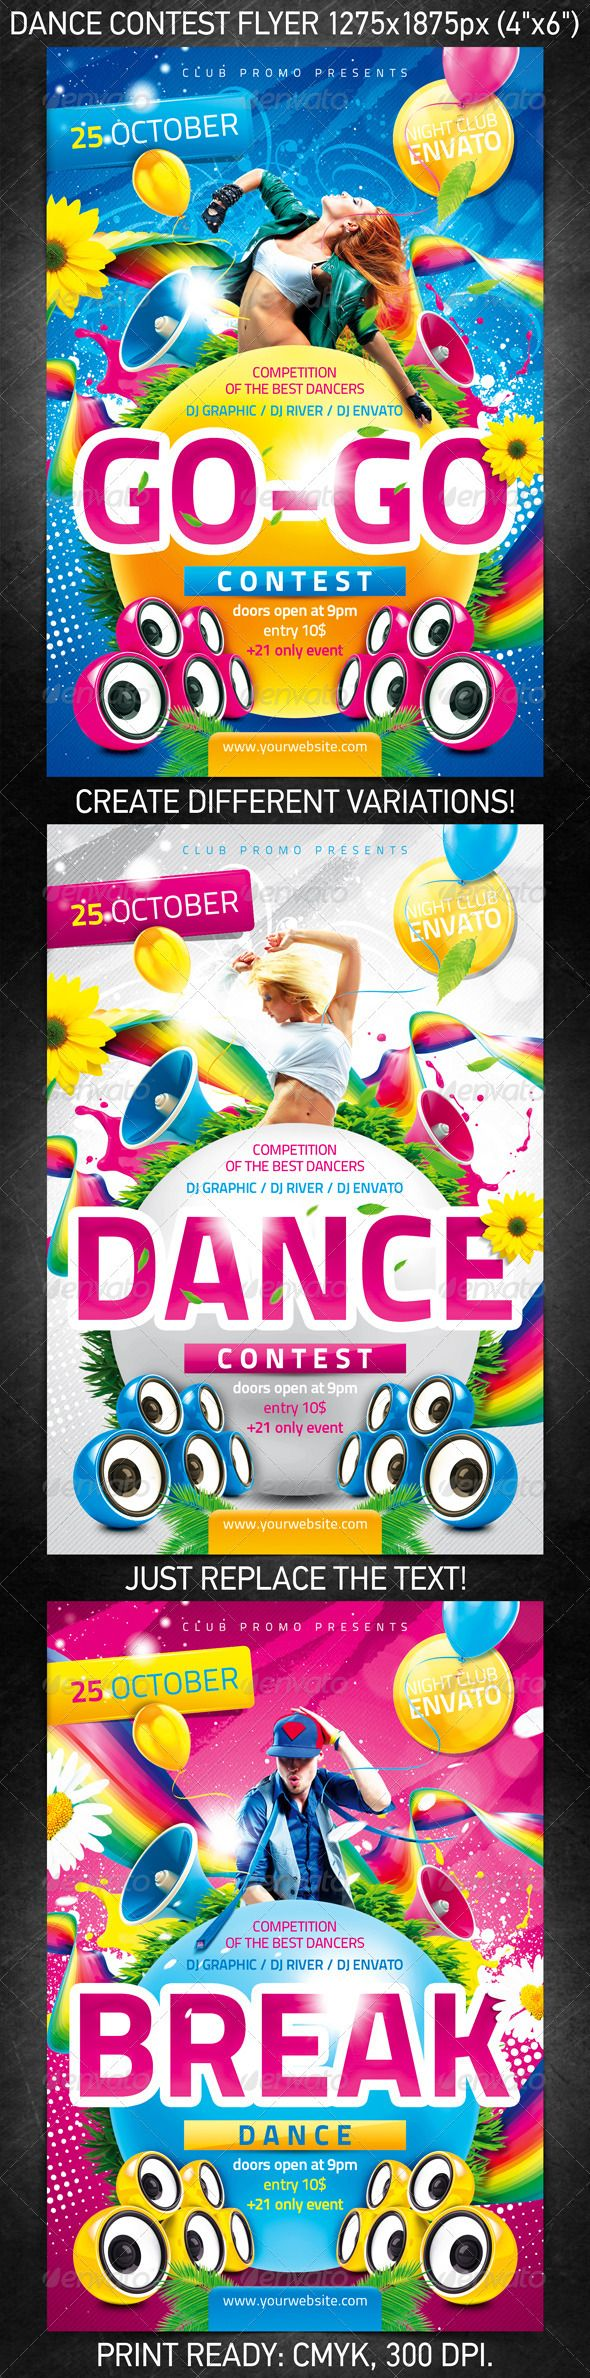 Dance Contest Flyer Flyer Template Template And Print Templates